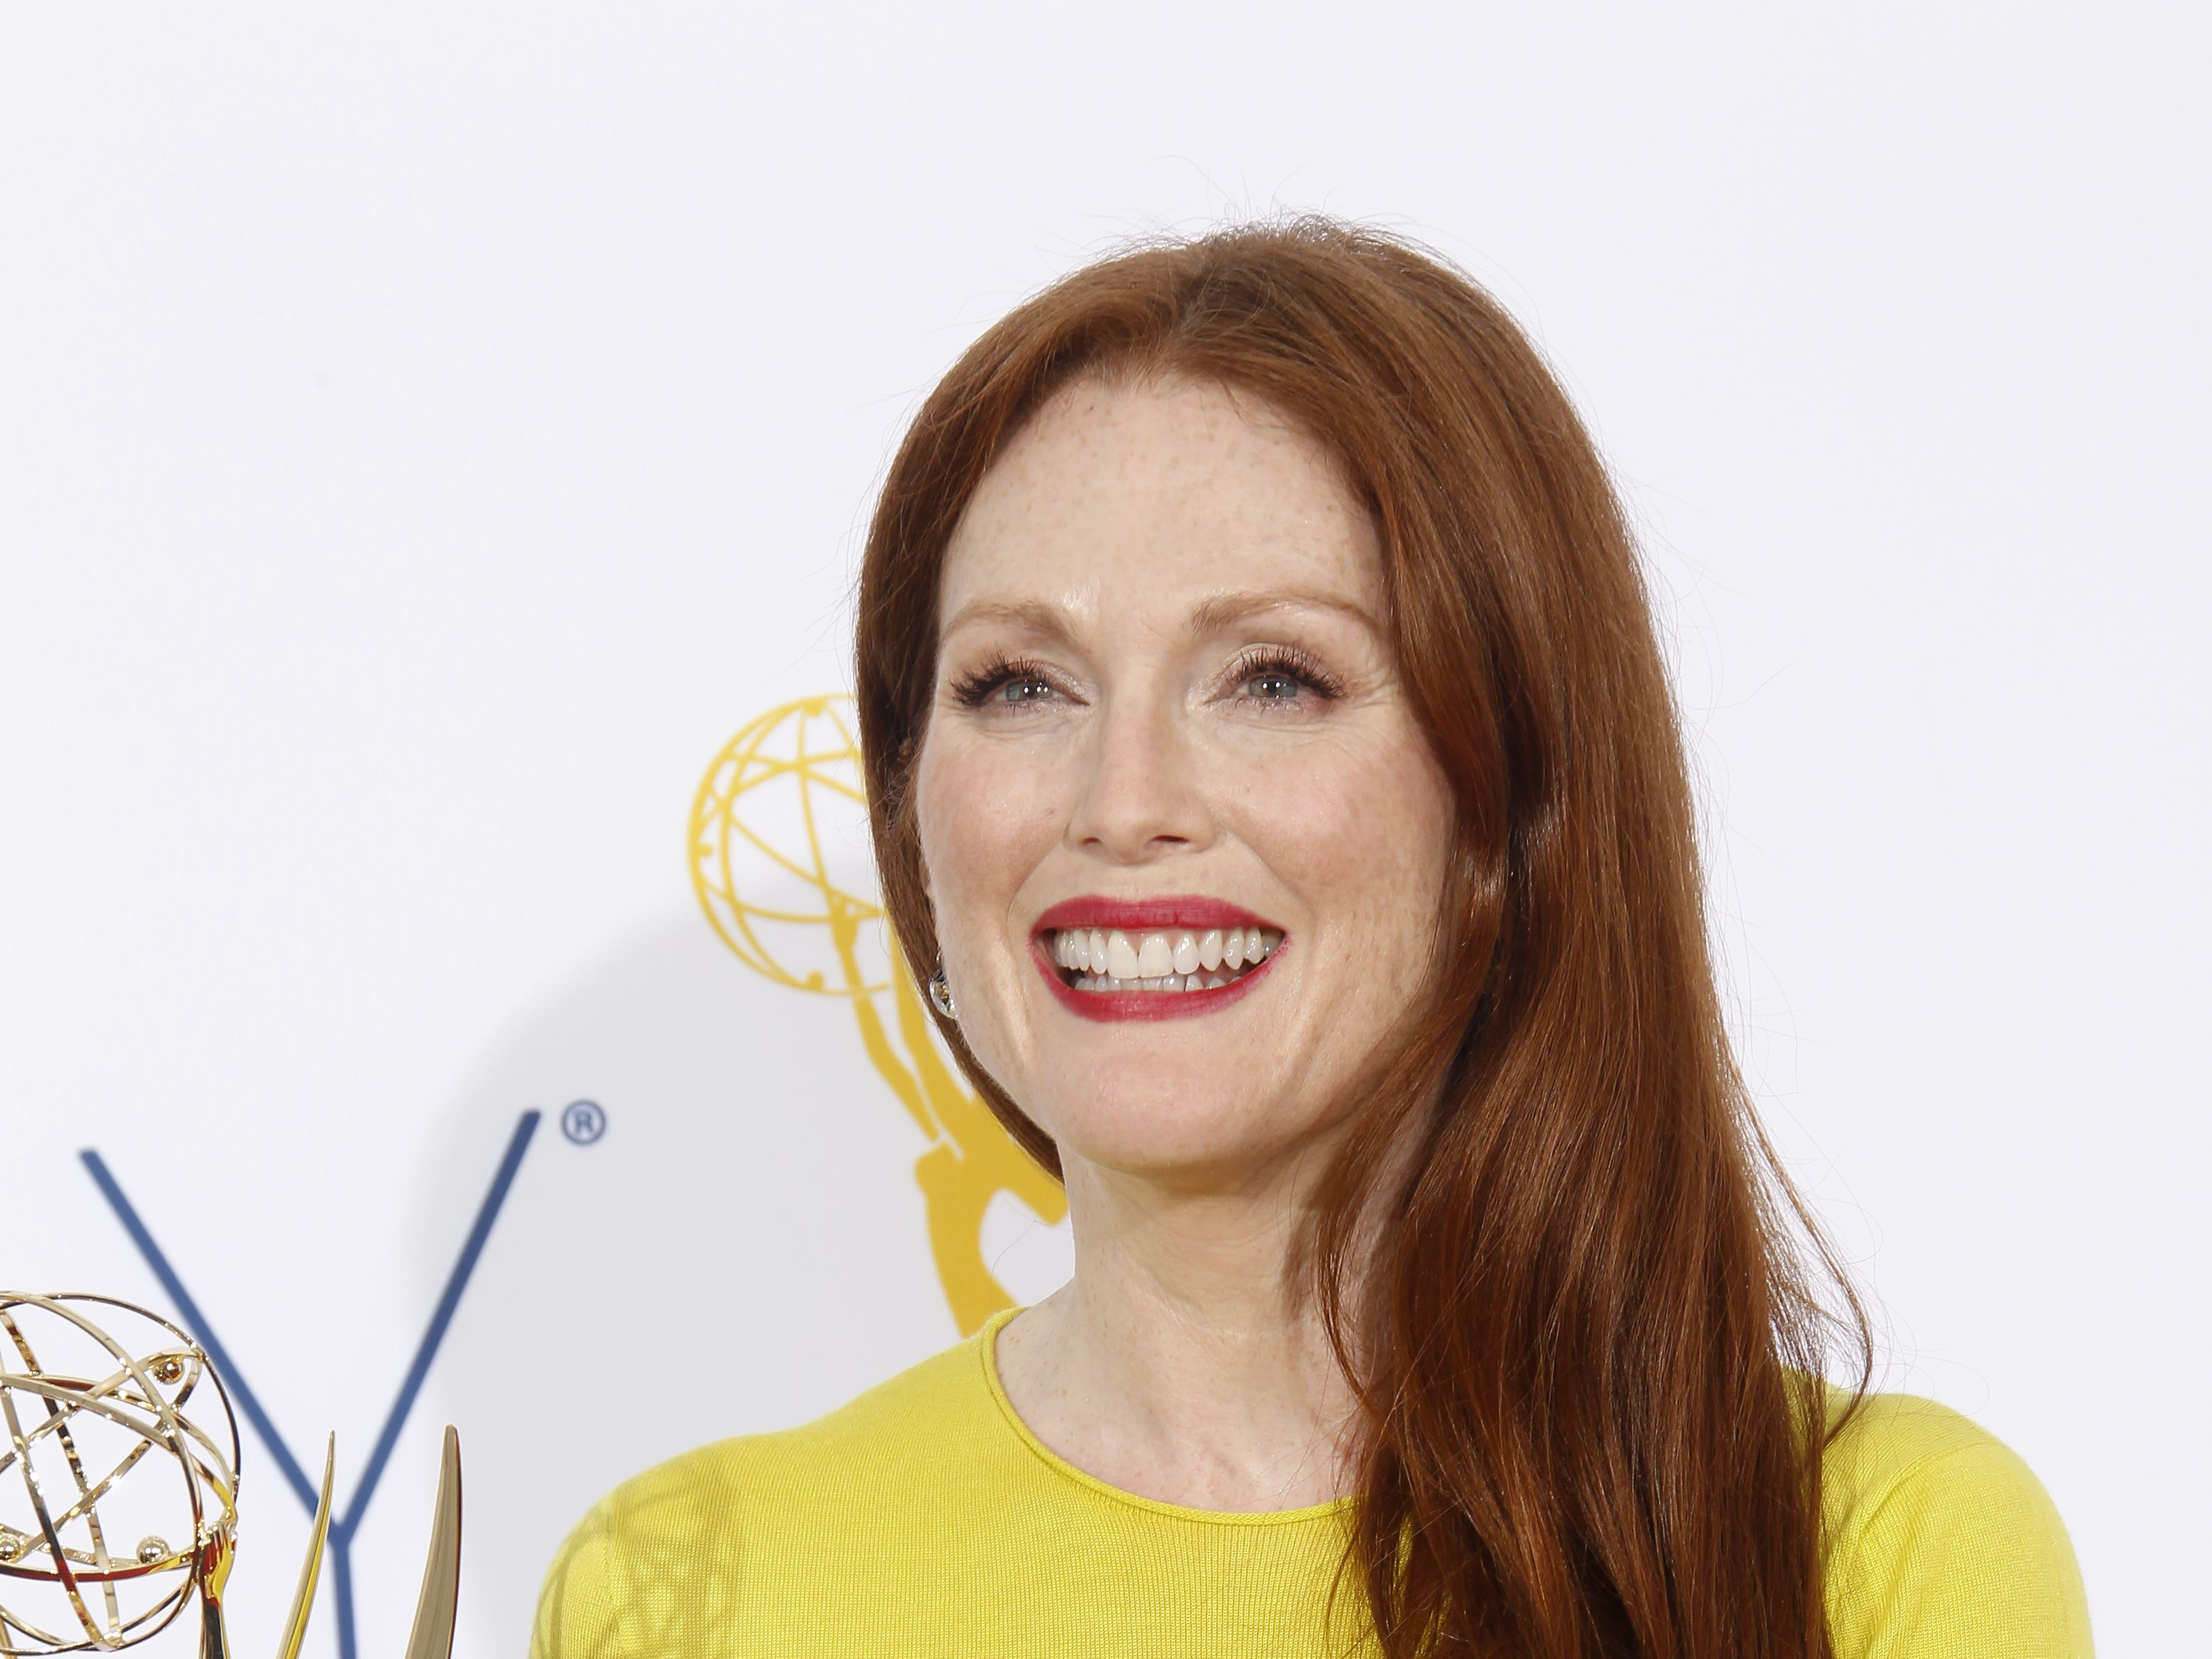 Outstanding Lead Actress in a Miniseries or Movie winner Julianne Moore poses in the photo room at the 2012 Emmy Awards at the Nokia Theatre in Los Angeles.